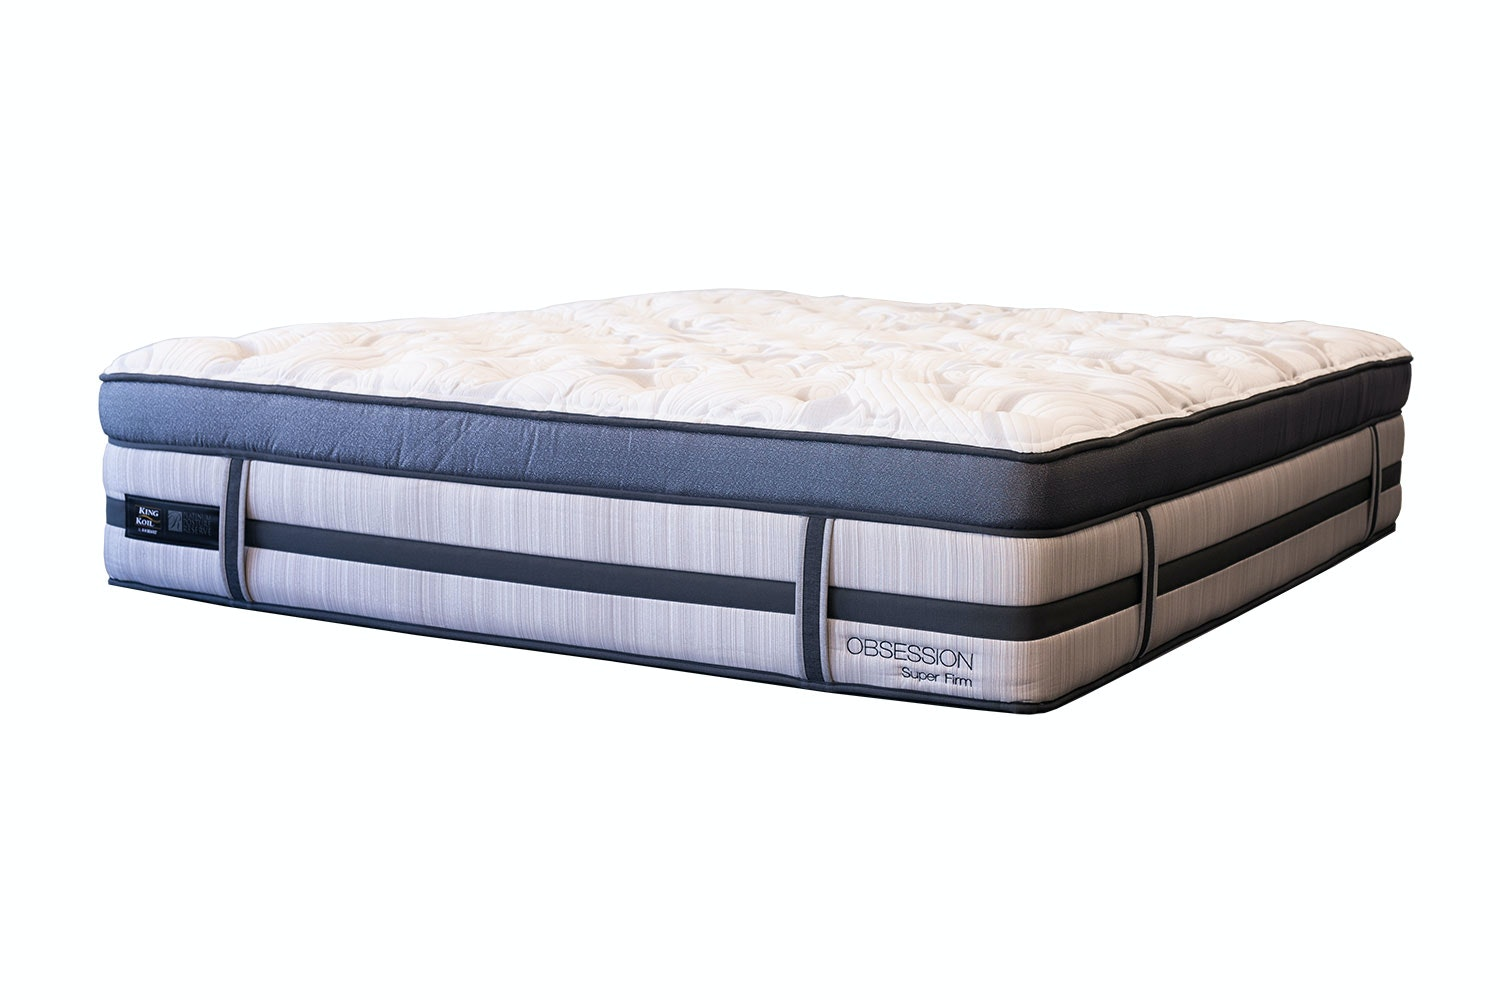 Obsession Super Firm King Single Mattress by King Koil